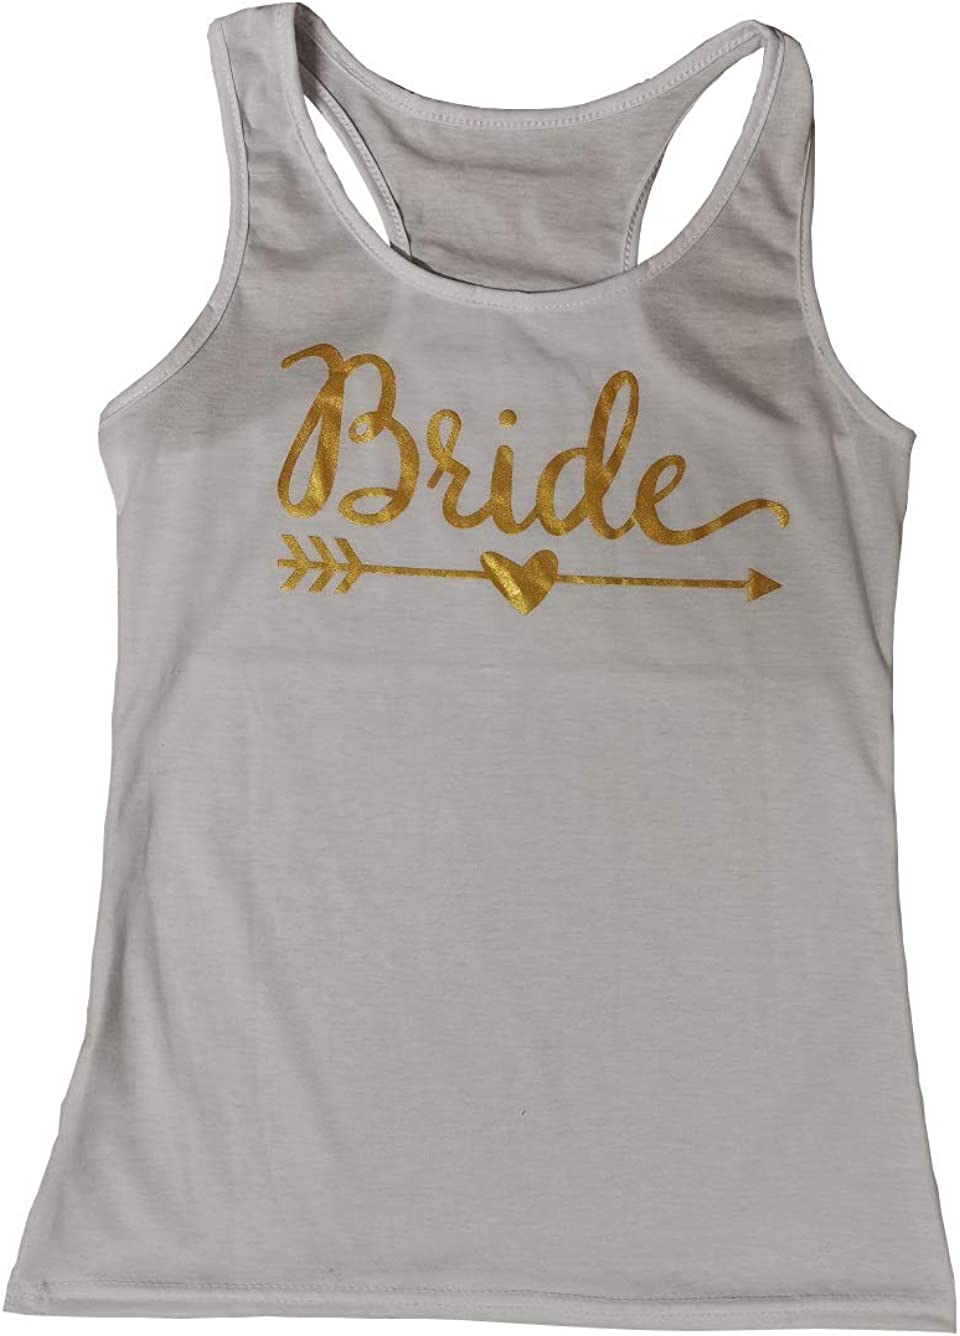 Shanenxn Women's Short Sleeve Bride Squad Letter Printing Sexy Tank Top Plus Size Vest Sexy Clothing (Color : White, Size : 4XL)